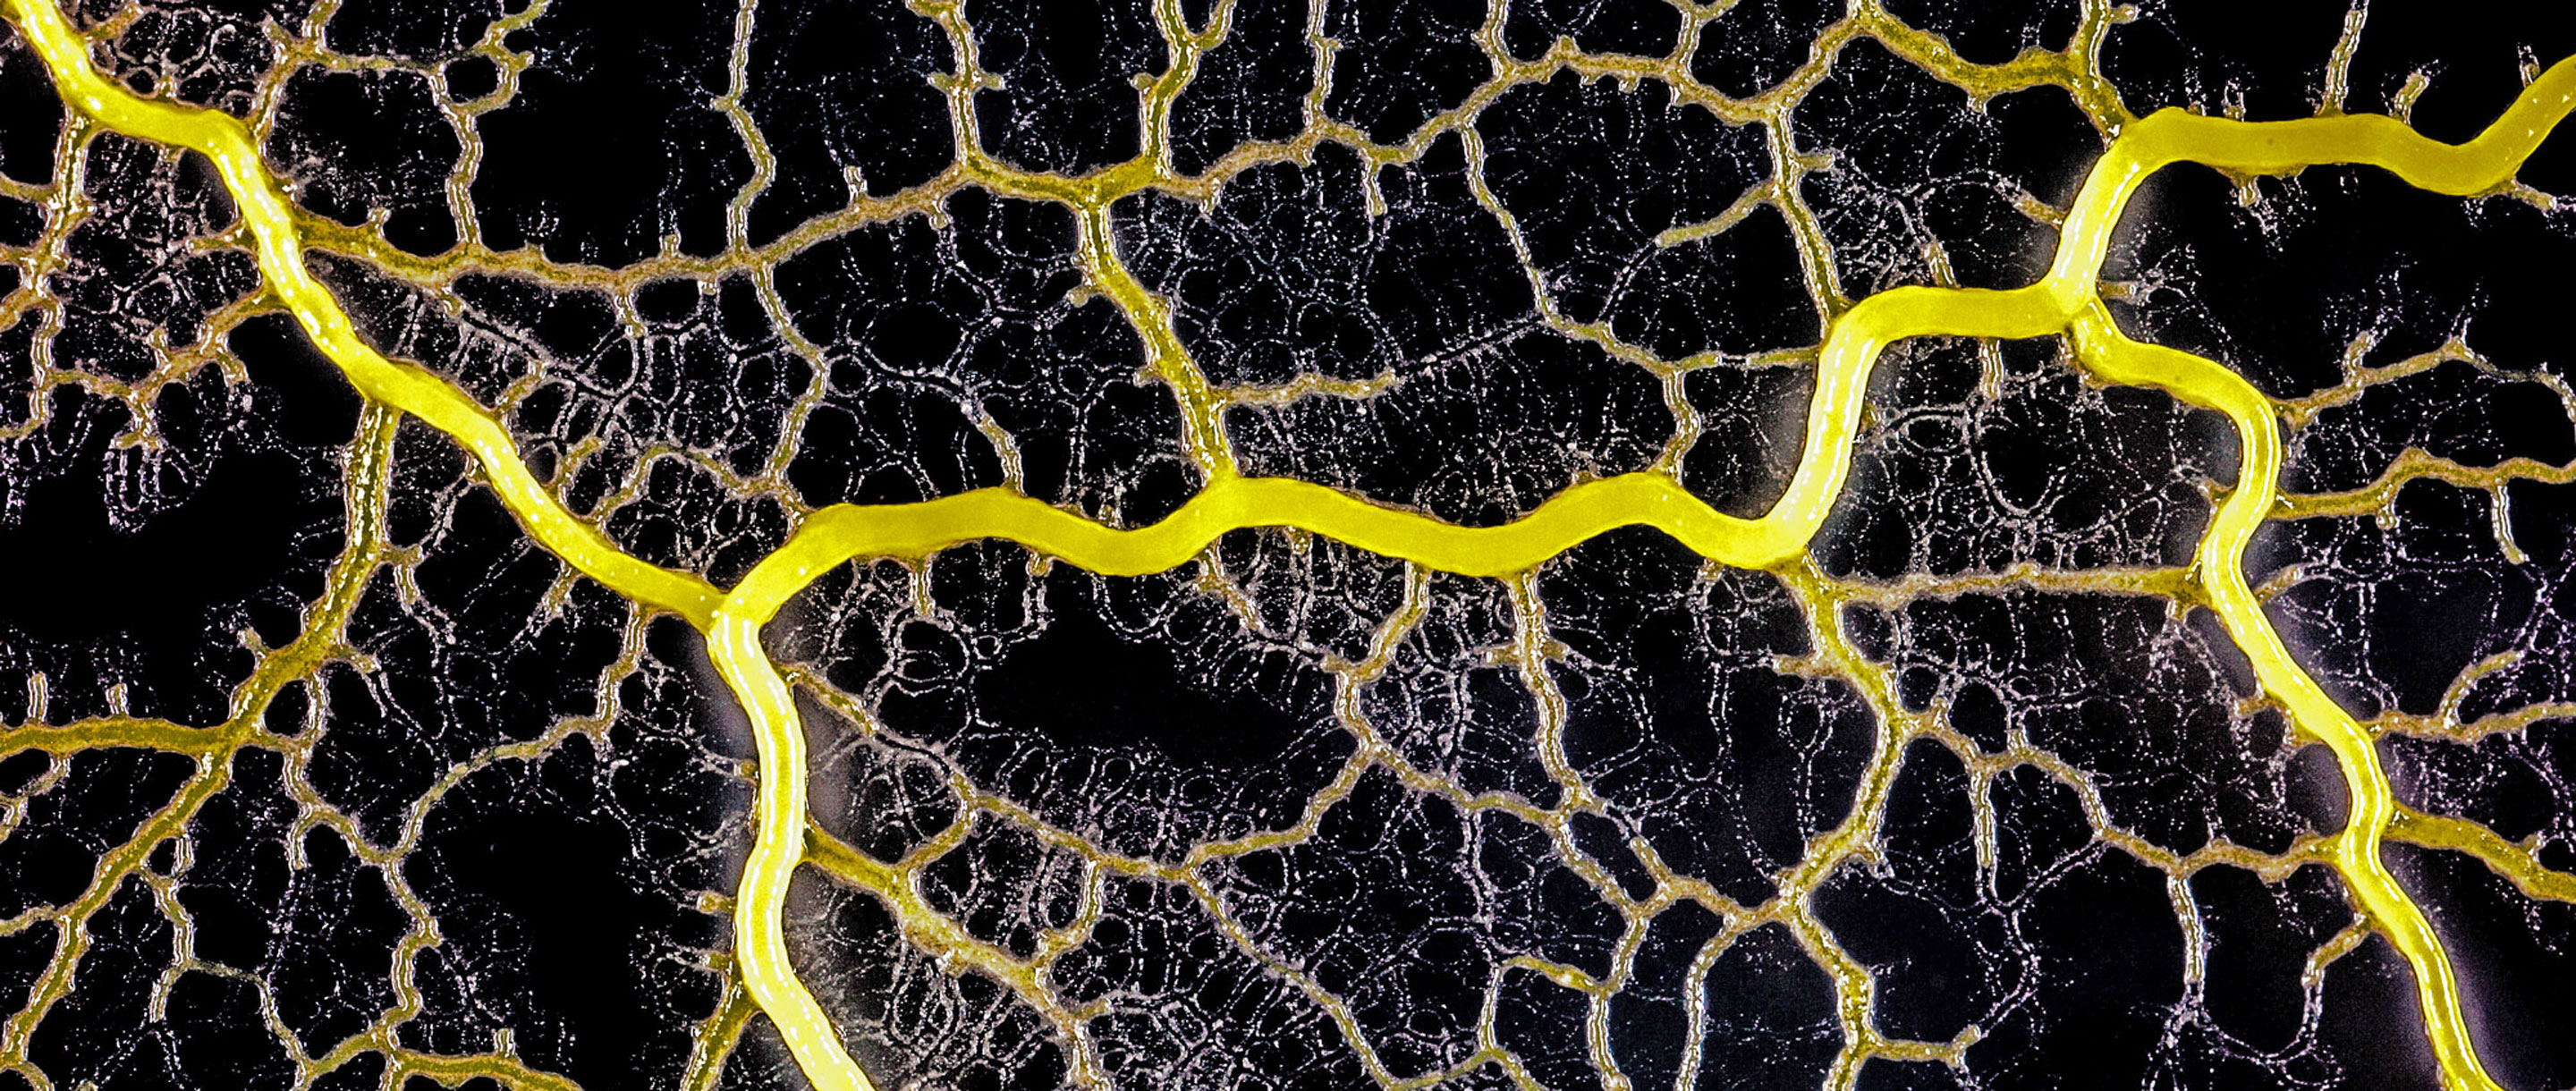 The slime mold Physarum polycephalum forms a network of cytoplasmic veins as it spreads across a surface.